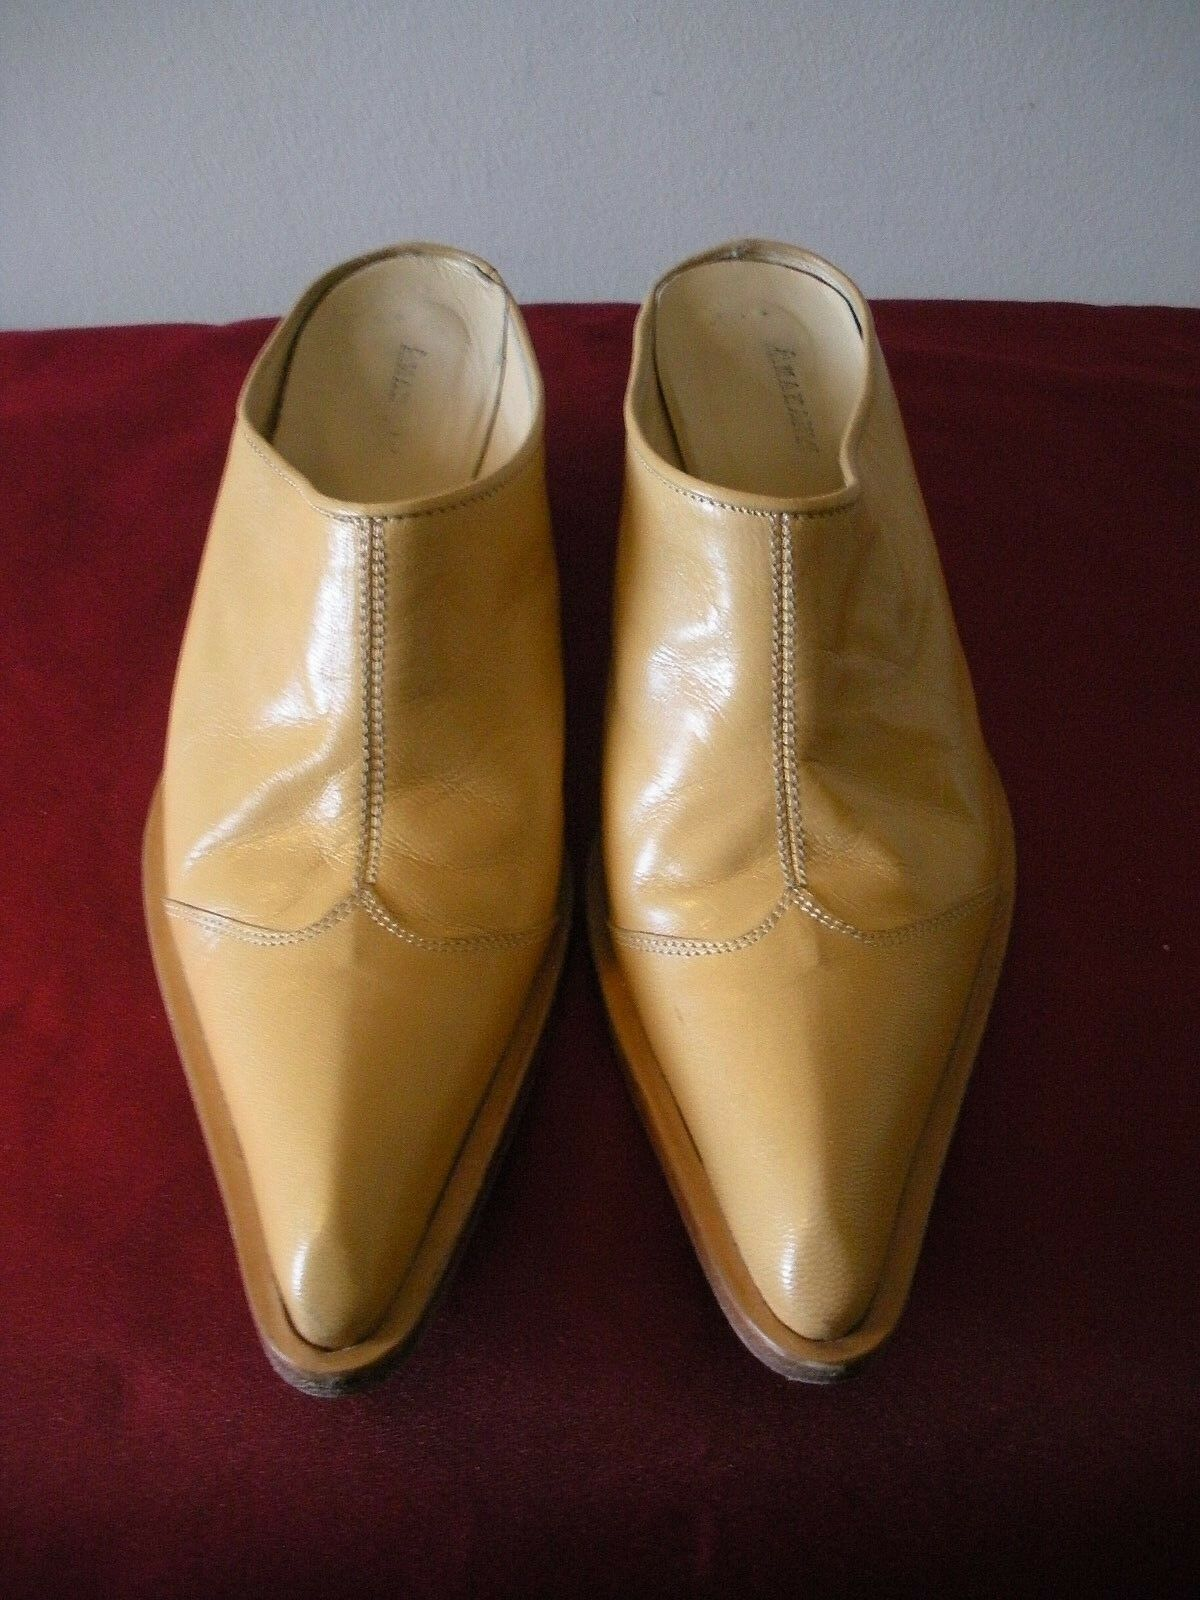 SHOOTIES     395 AMARANTI Tan Camel Leather Booties shoes BOOTS  38  7.5M